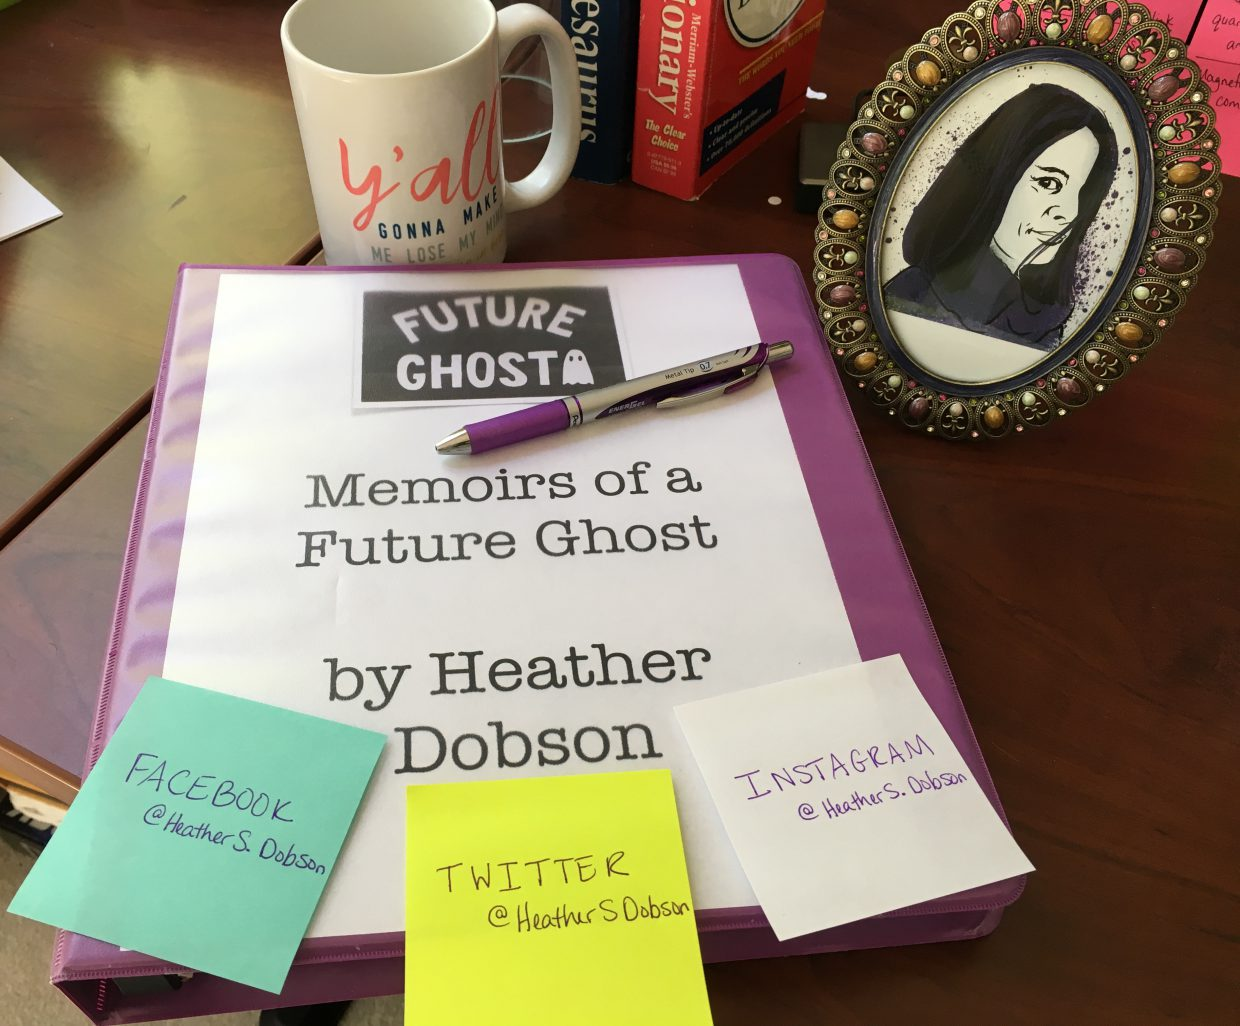 Heather S. Dobson, Author